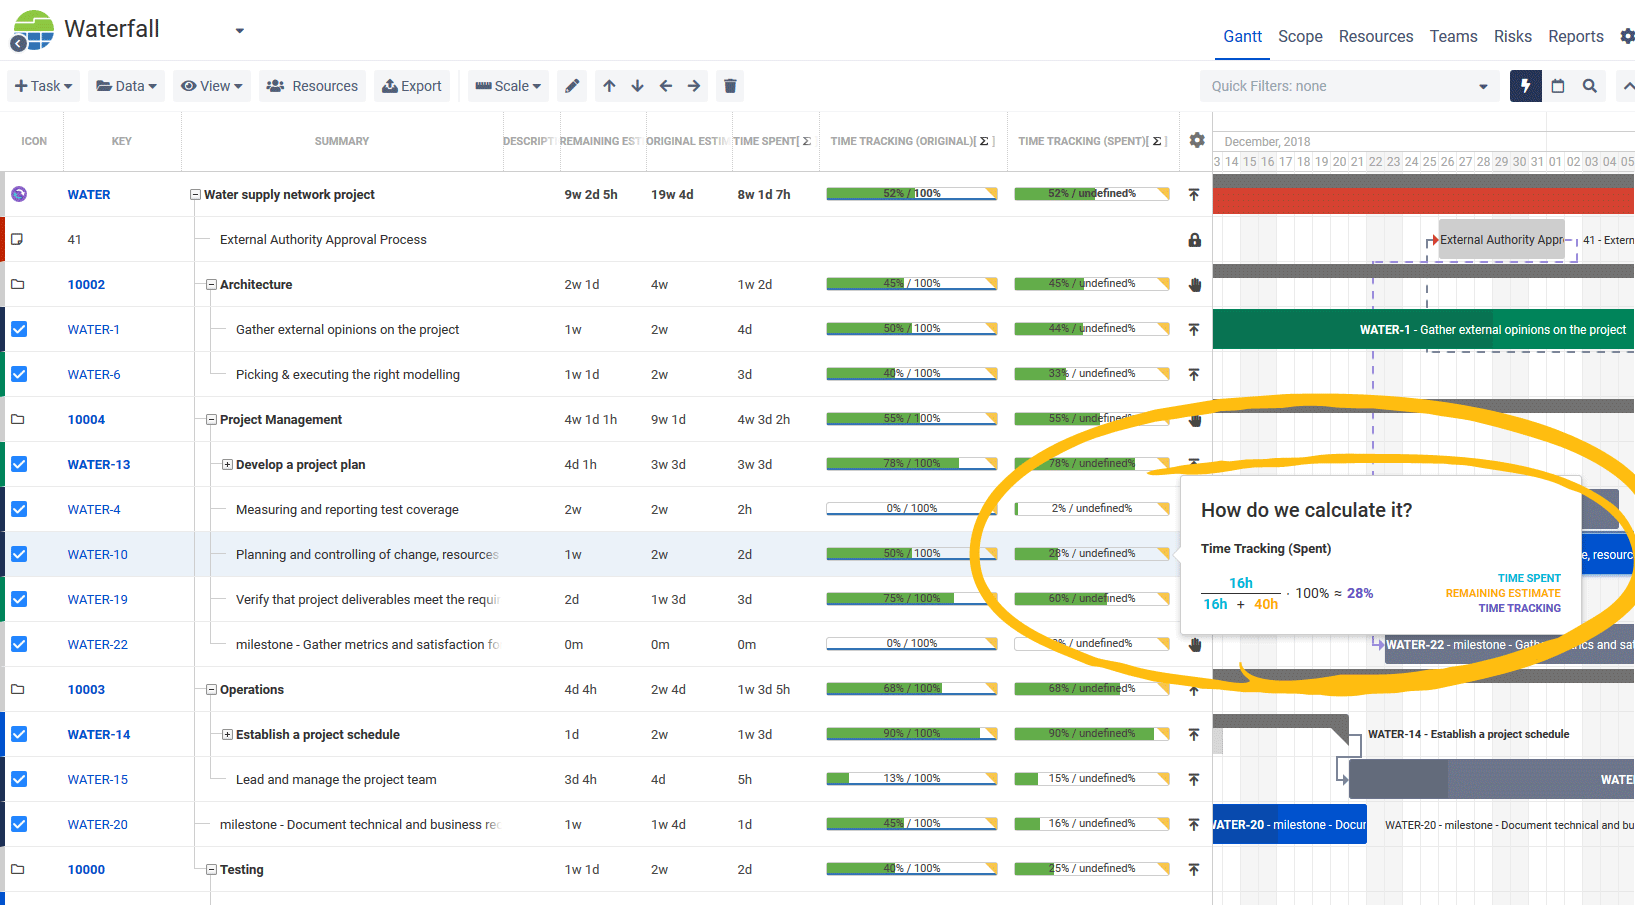 New method of progress tracking Jira BigPicture. Time tracking (Spent)